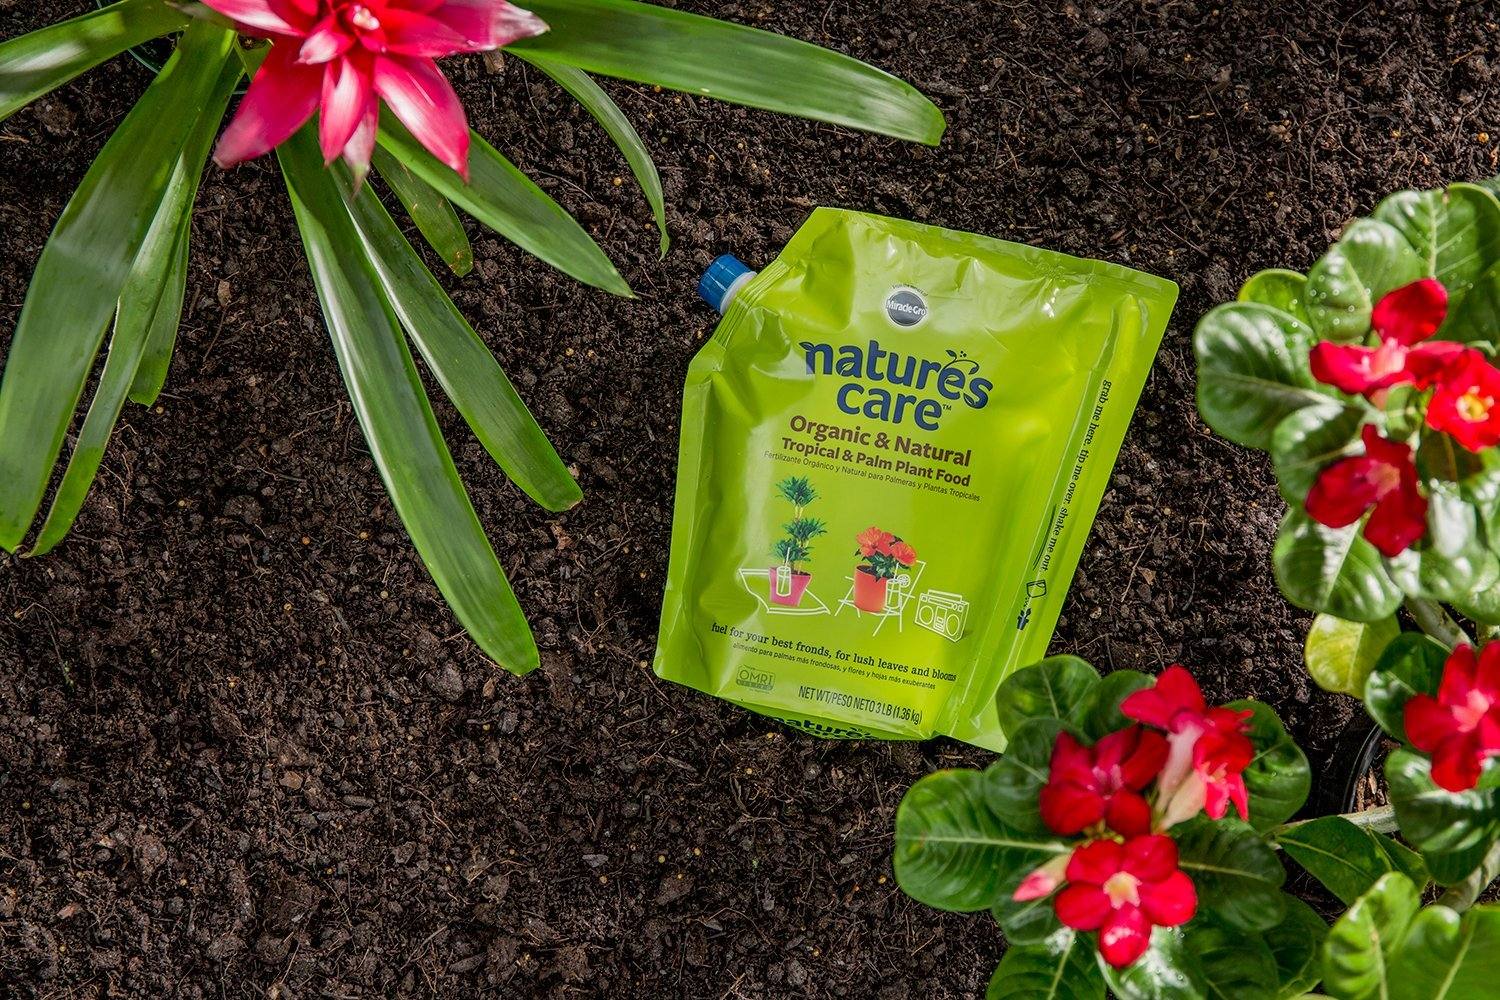 Amazon.com : Miracle-Gro Natures Care Organic and Natural Tropical and Palm Plant Food : Garden & Outdoor